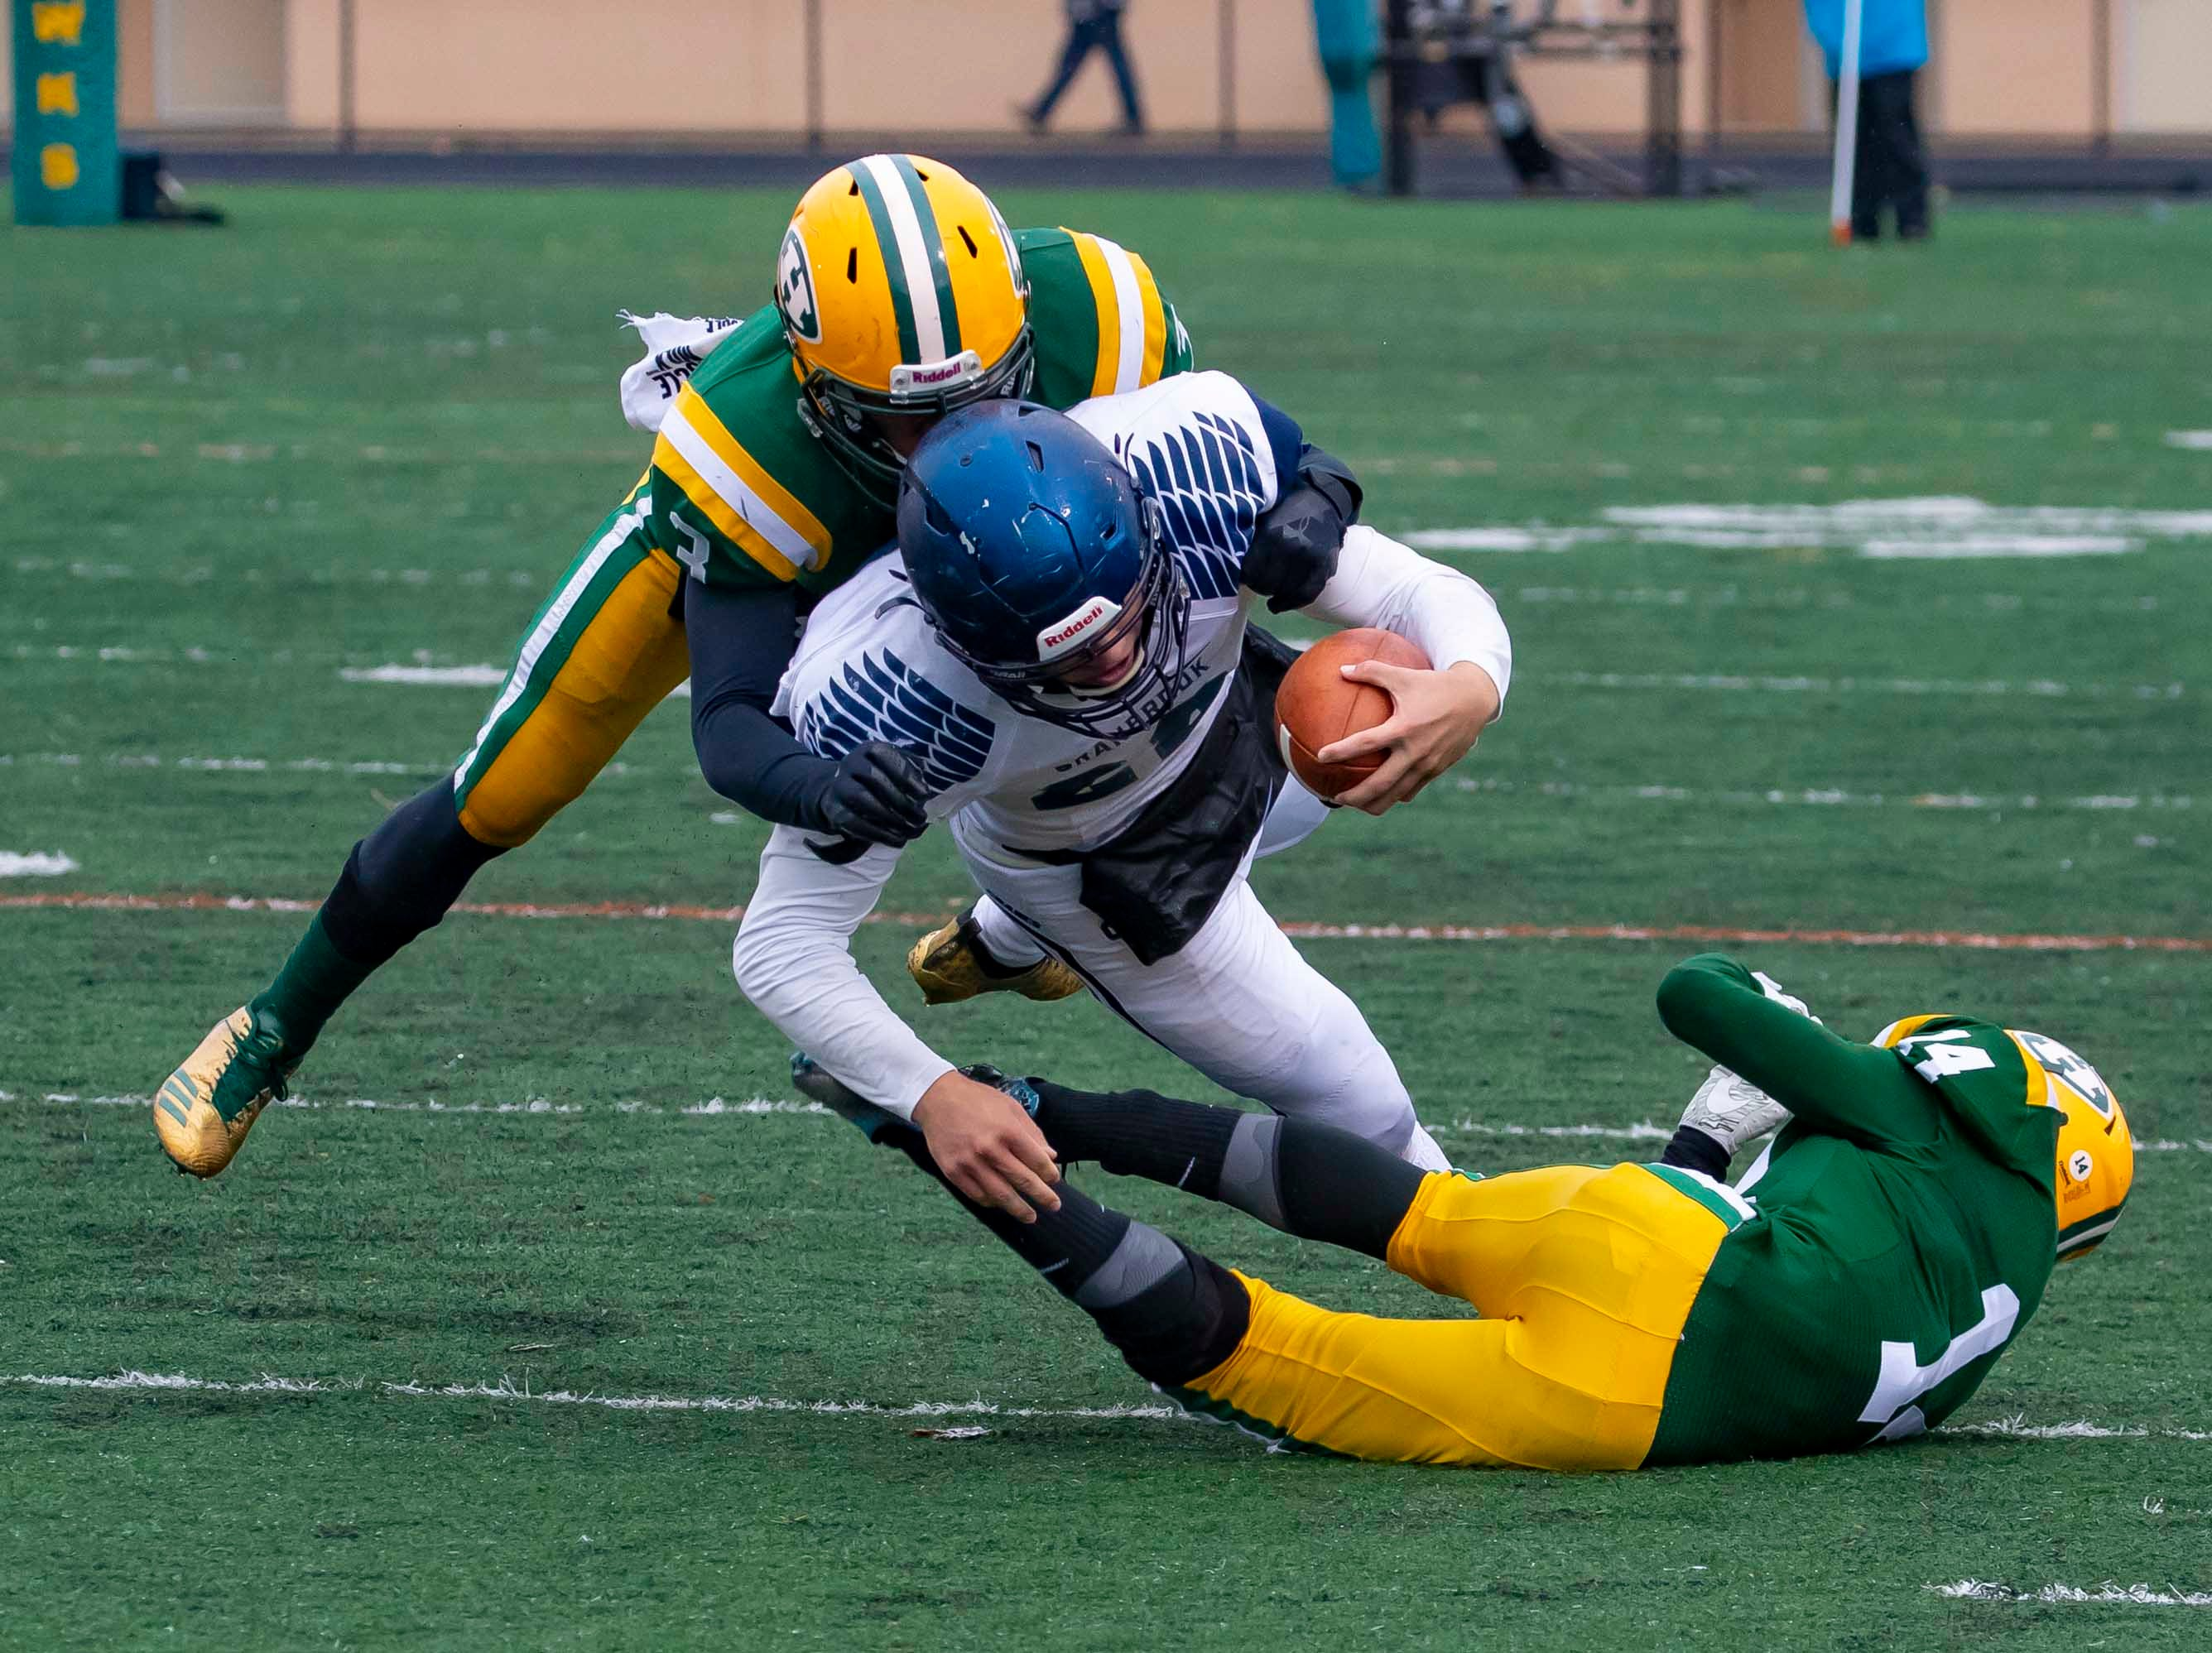 FARMINGTON HILLS, MI - OCTOBER 27: Jack Fairman (22) of Cranbrook Kingswood is tackles by Roderick Heard (3) and Javair Beeler (14) of Farmington Hills Harrison Hawks during a high school football game at John Herrington Athletic Complex at Buller Field on October 27, 2018 in Farmington Hills, Michigan. (Photo by Dave Reginek Special to Detroit News) *** Local Caption ***